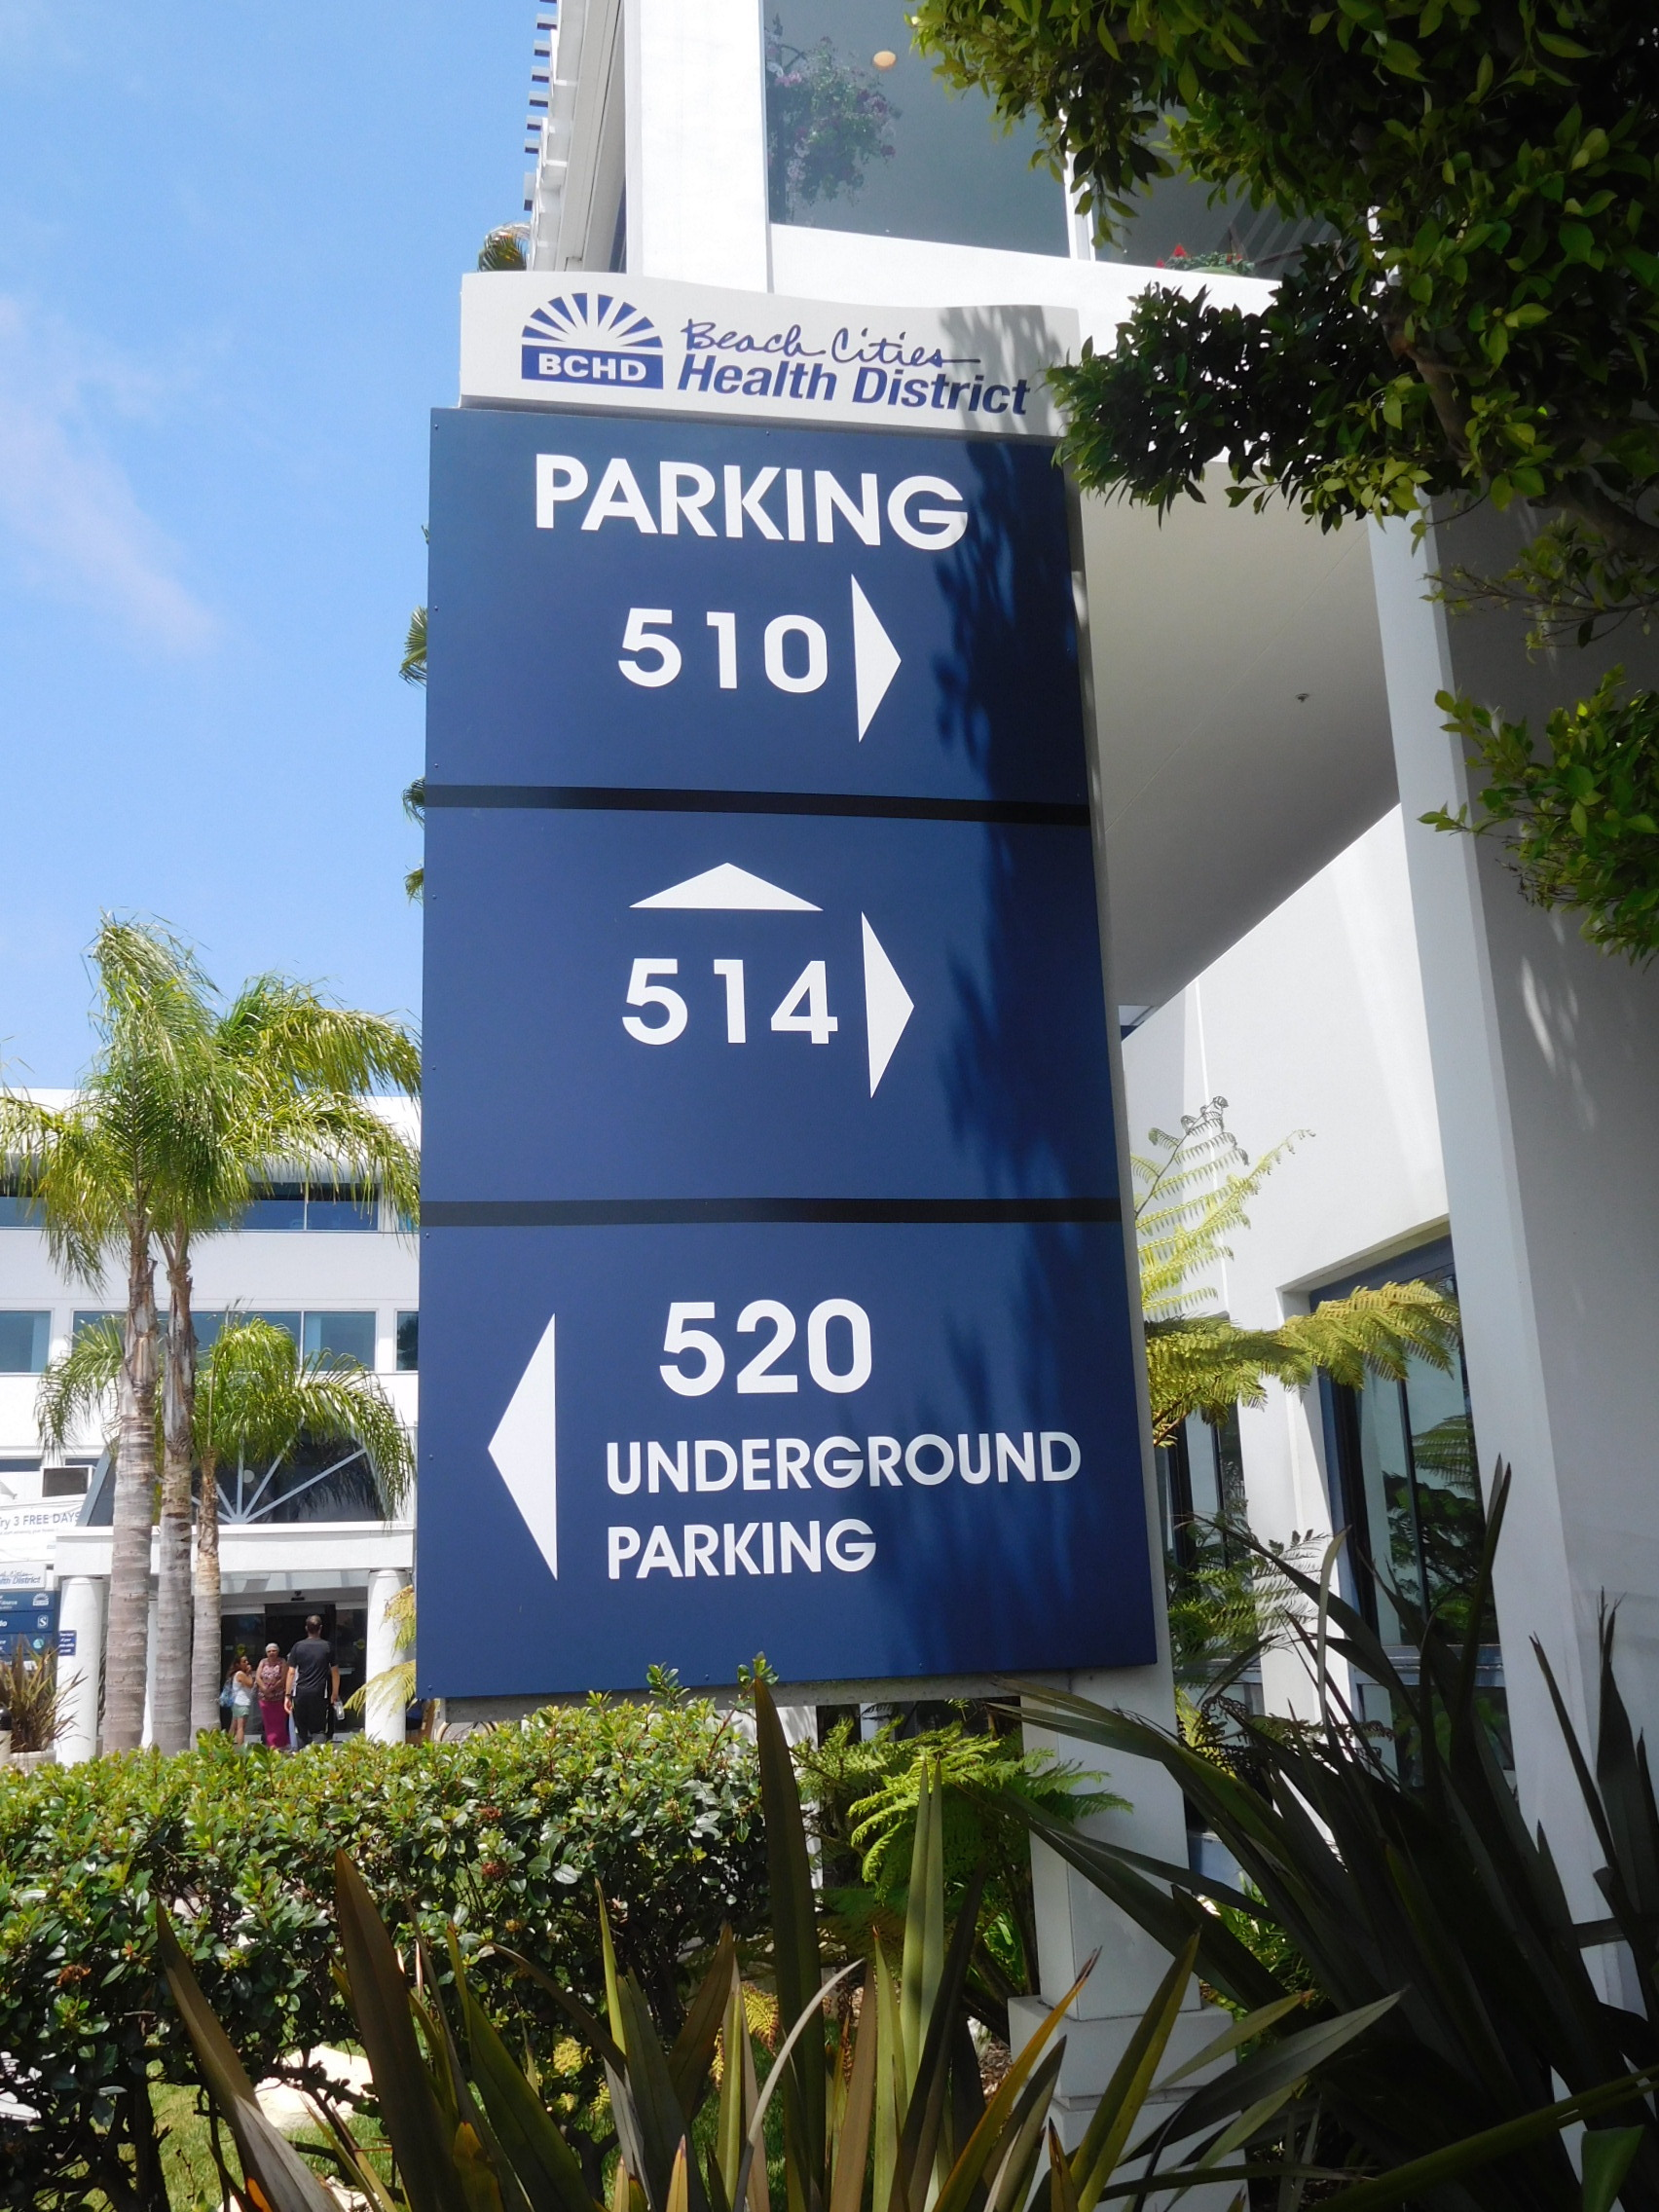 images/Parking-Sign-510-514.jpg